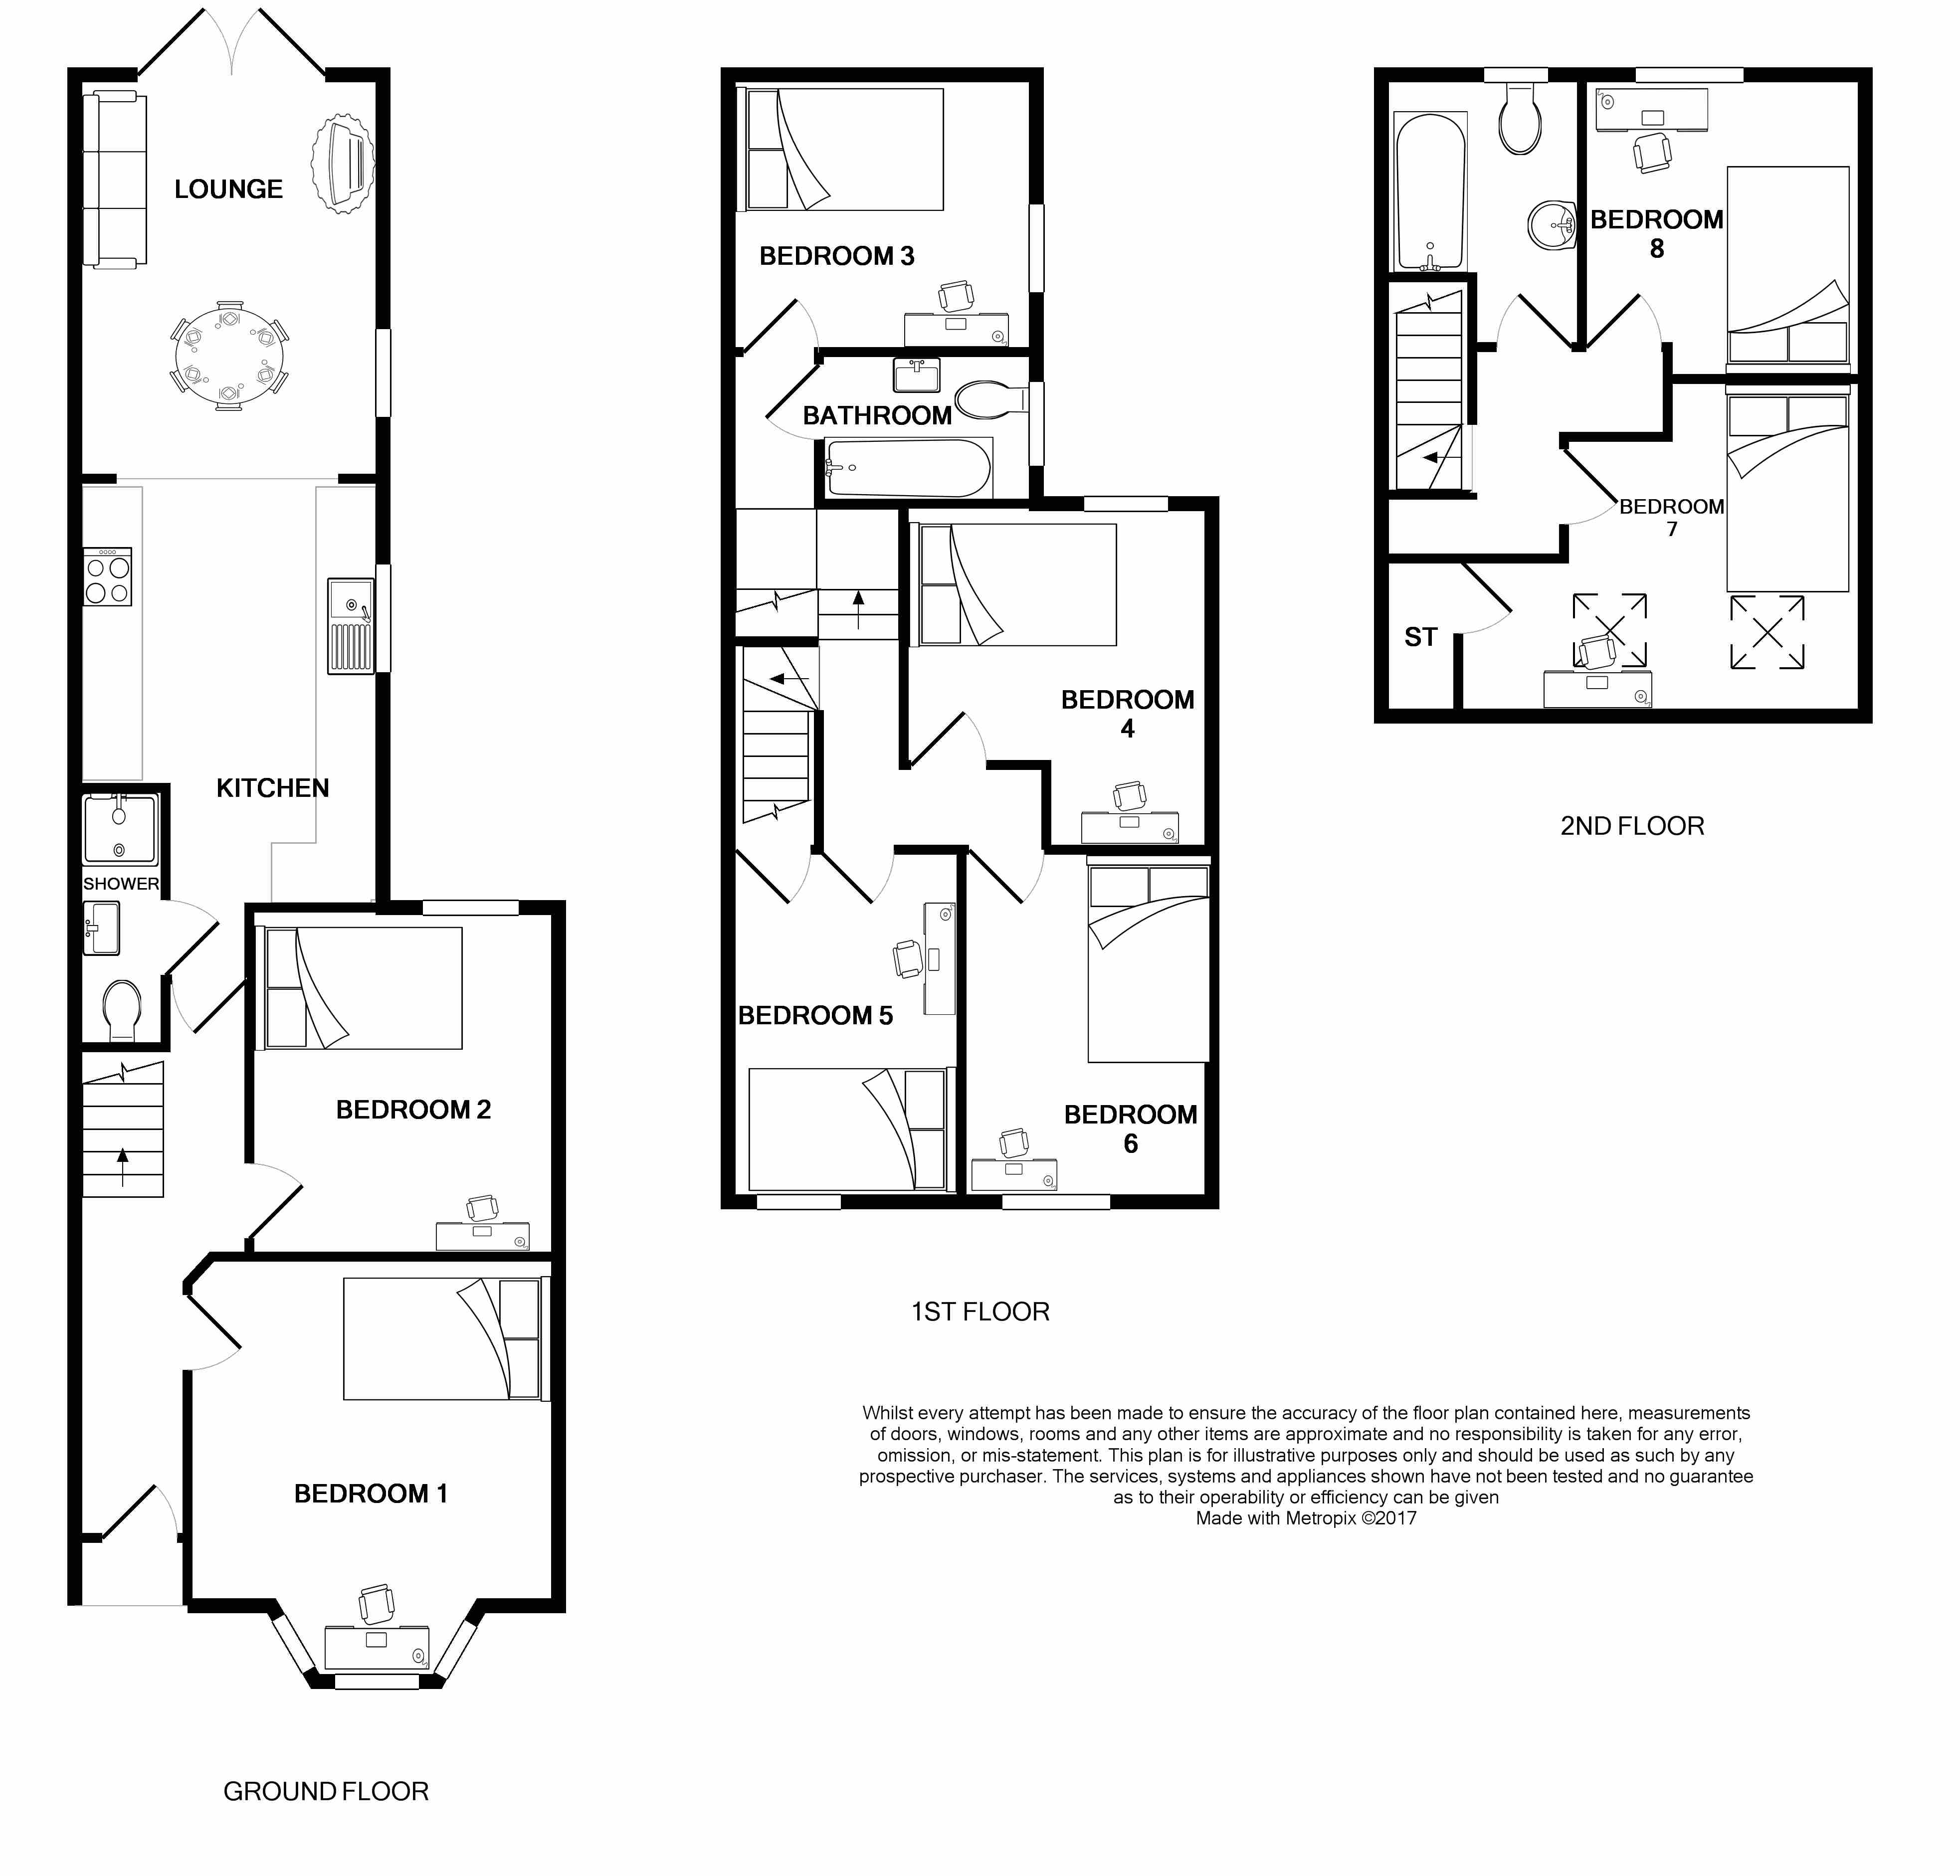 21 Harriet Street Floorplans